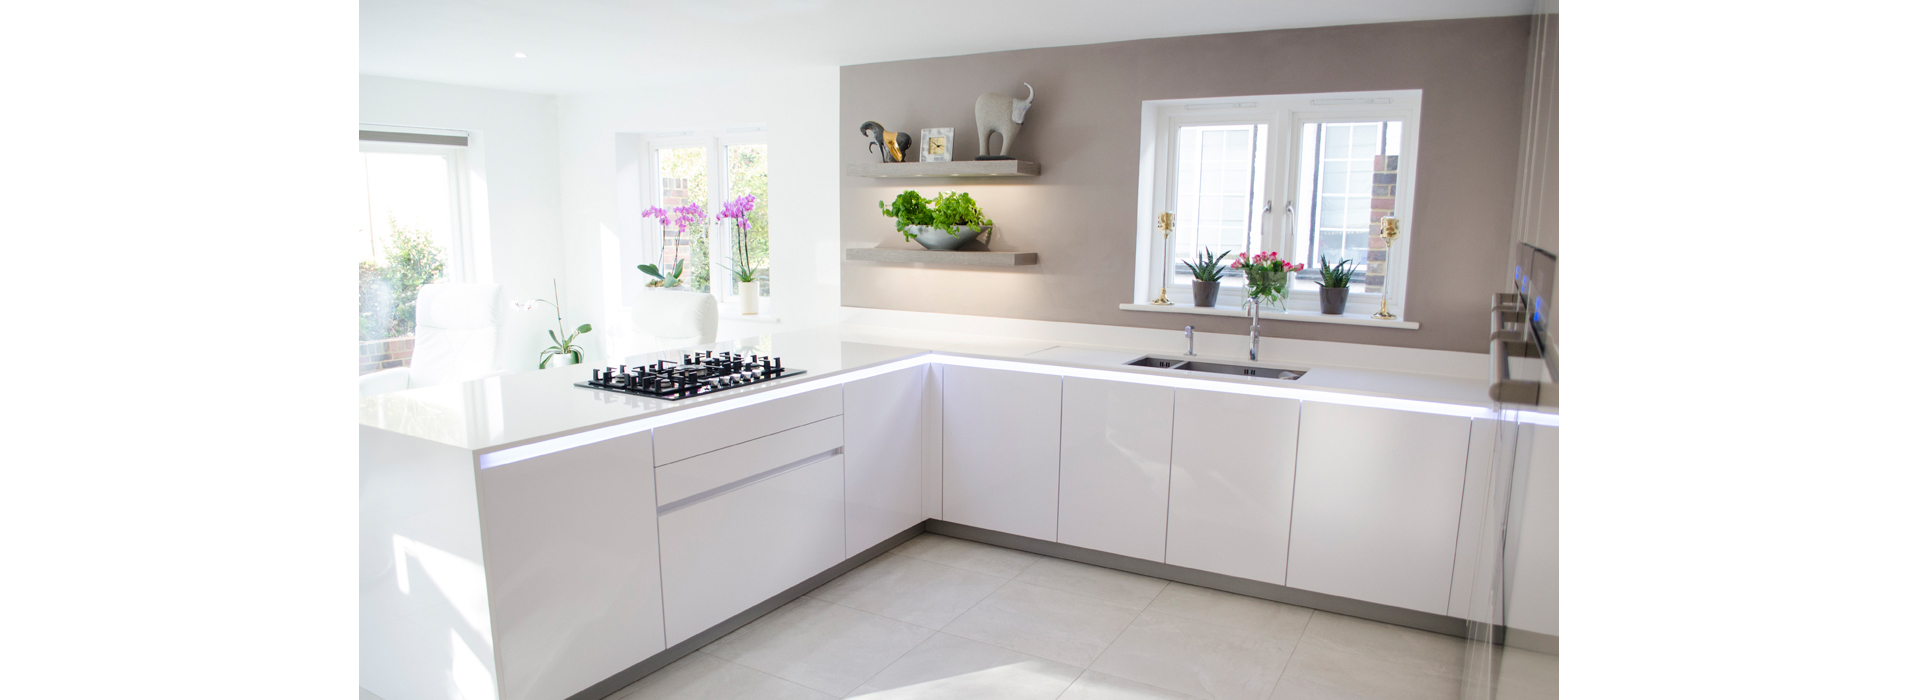 Centre Kitchen Design In London - talentneeds.com -